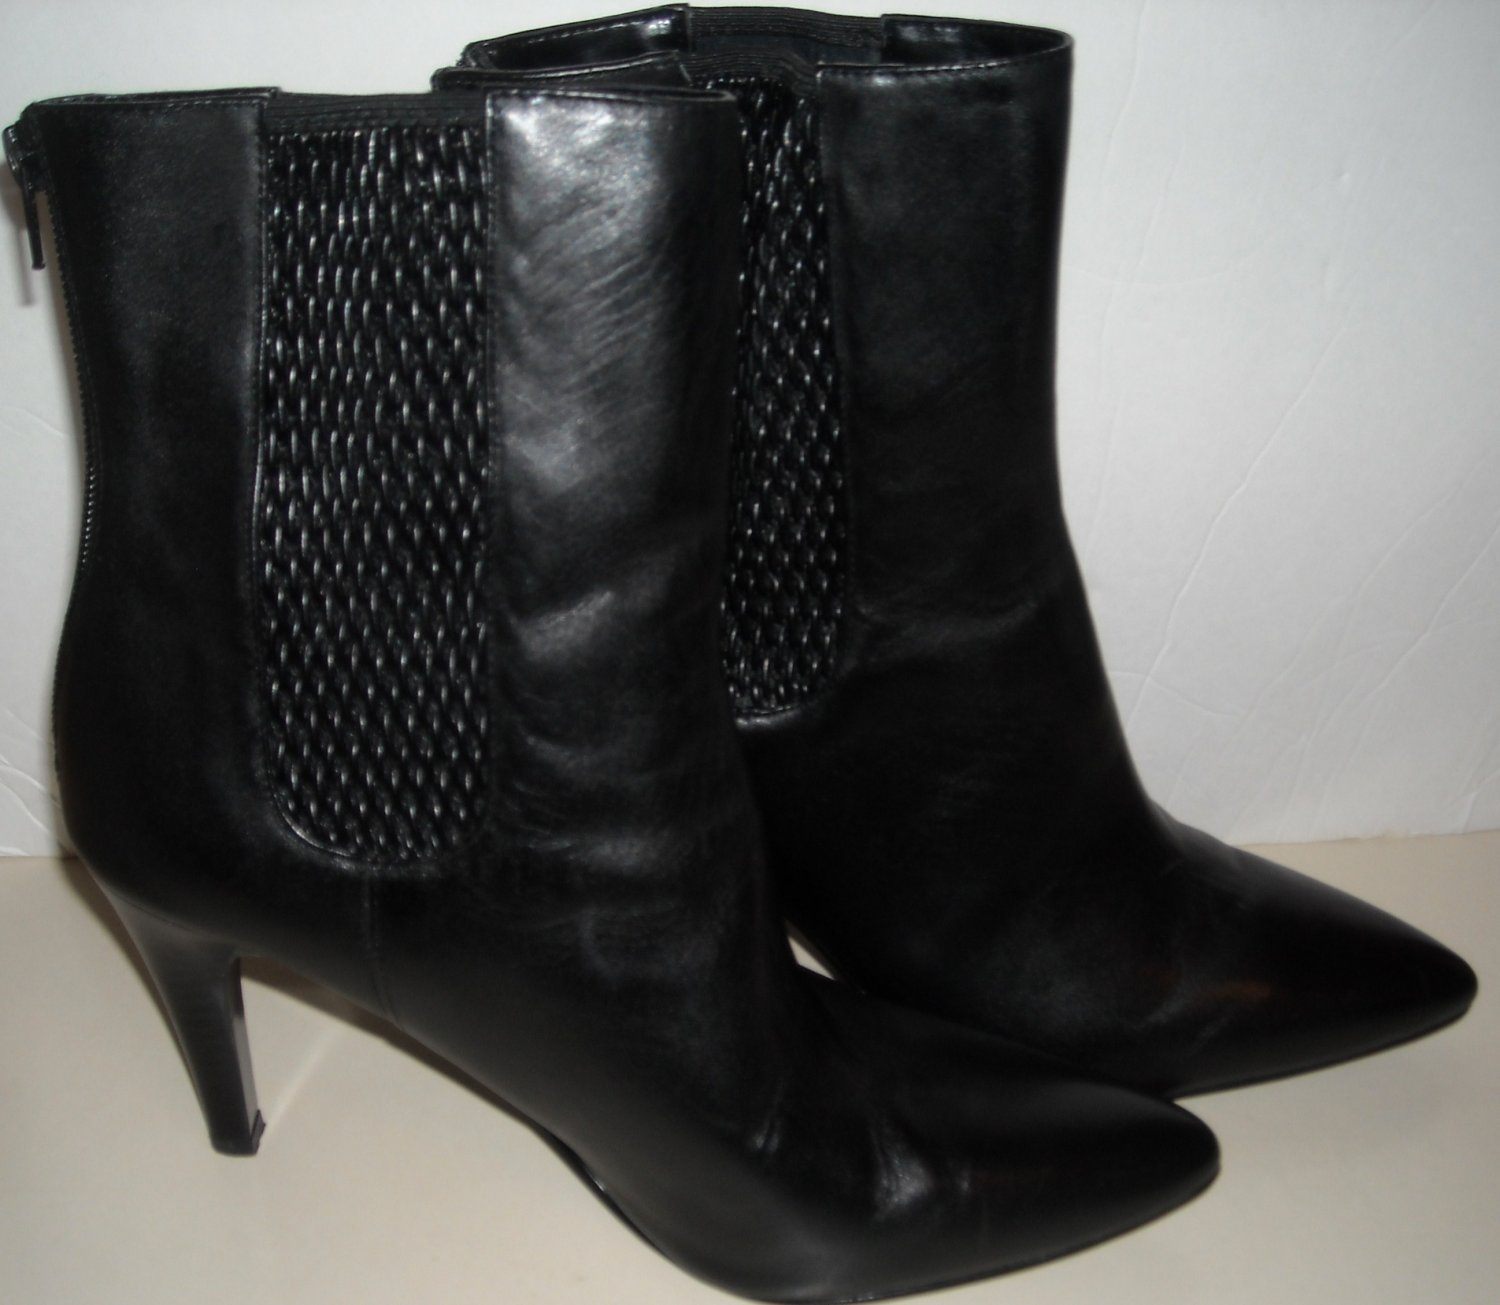 WORTHINGTON BLACK ANKLE BOOTS SIZE 9-1/2